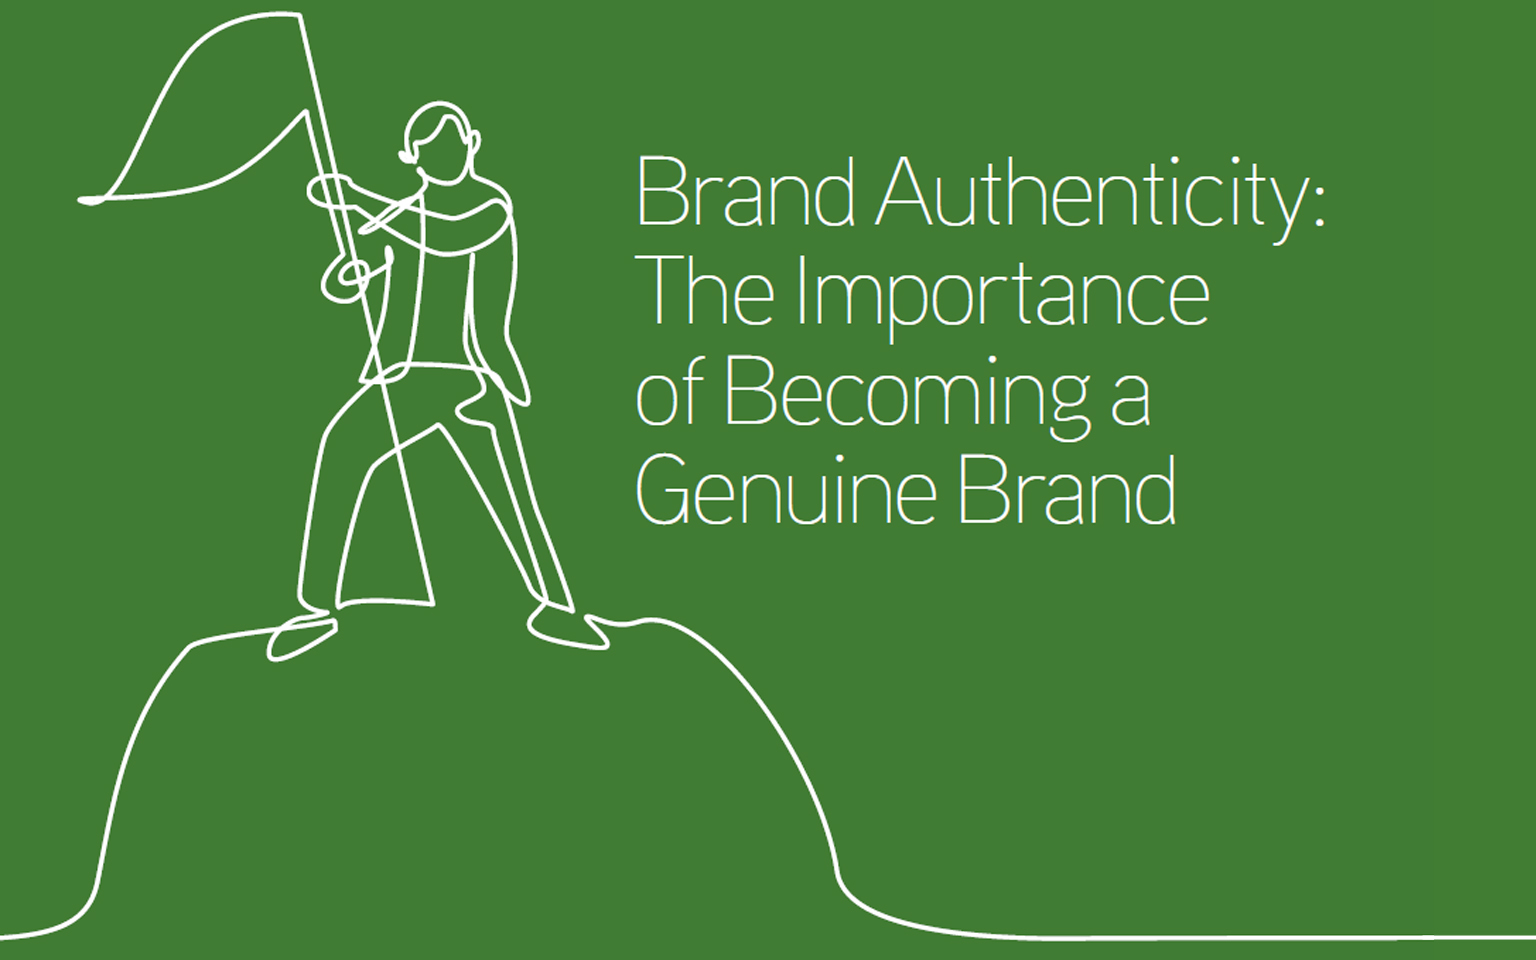 Brand Authenticity Featured Image